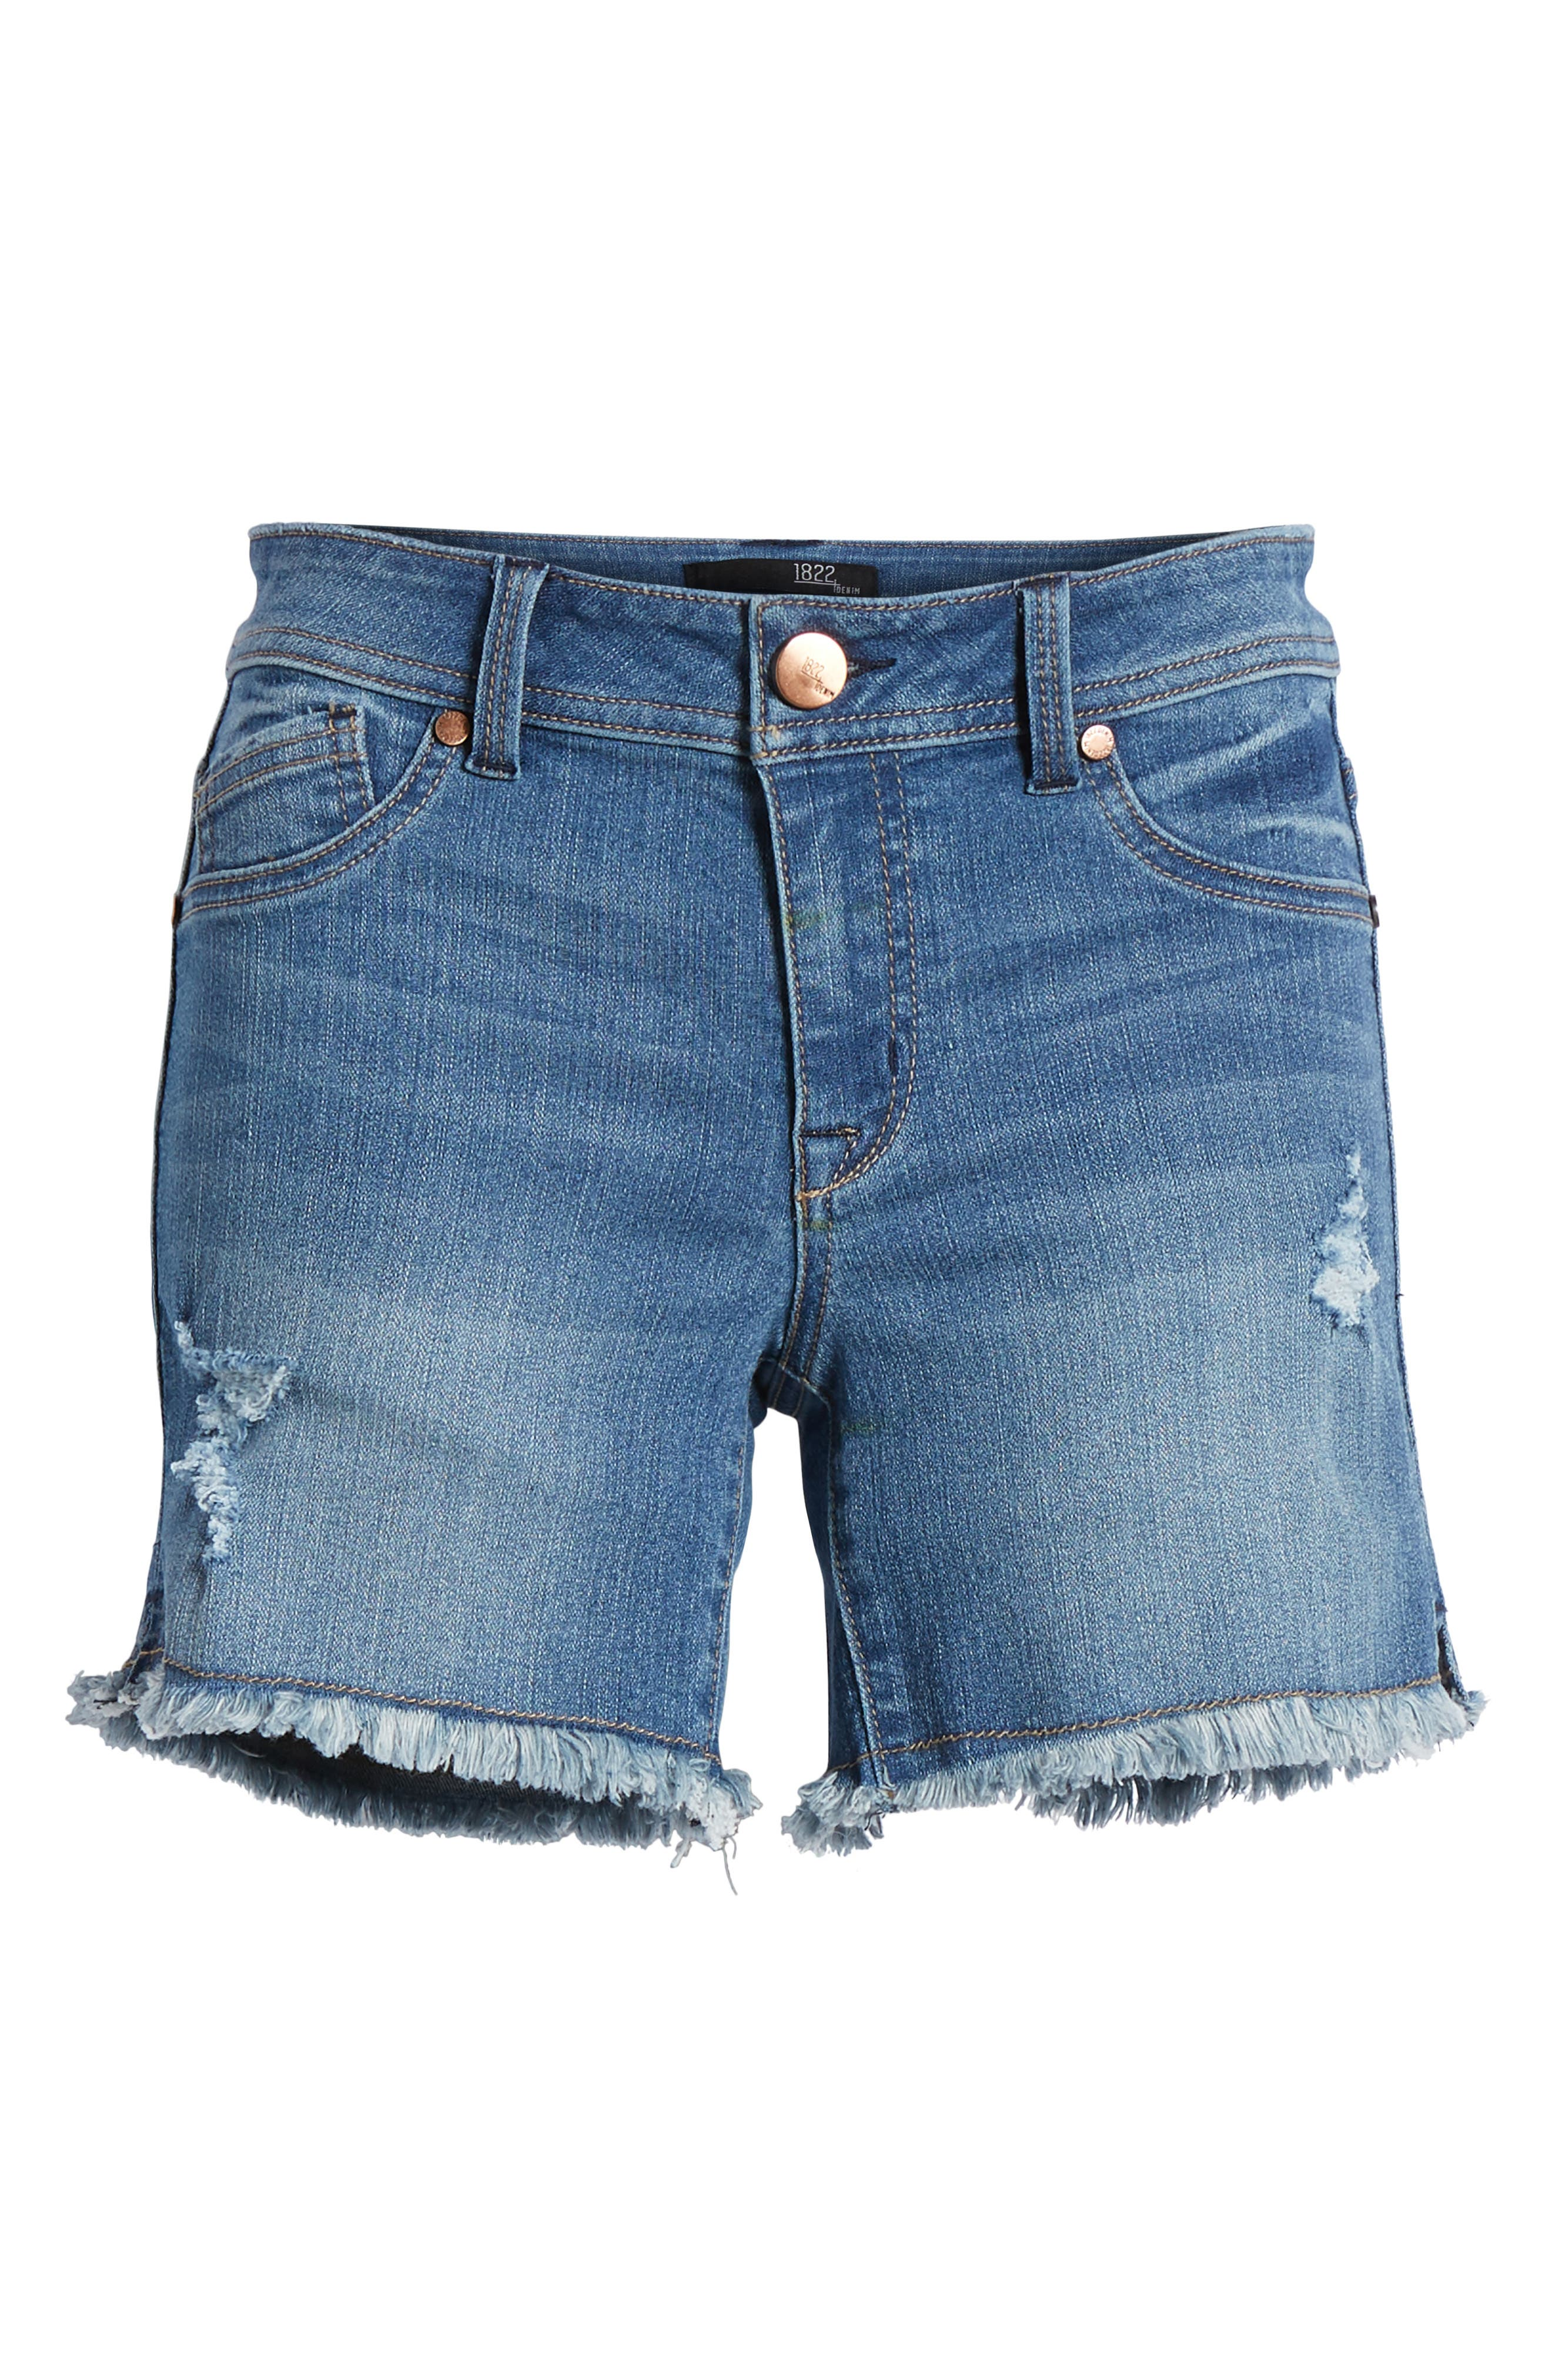 Raw Hem Denim Shorts,                             Alternate thumbnail 7, color,                             400